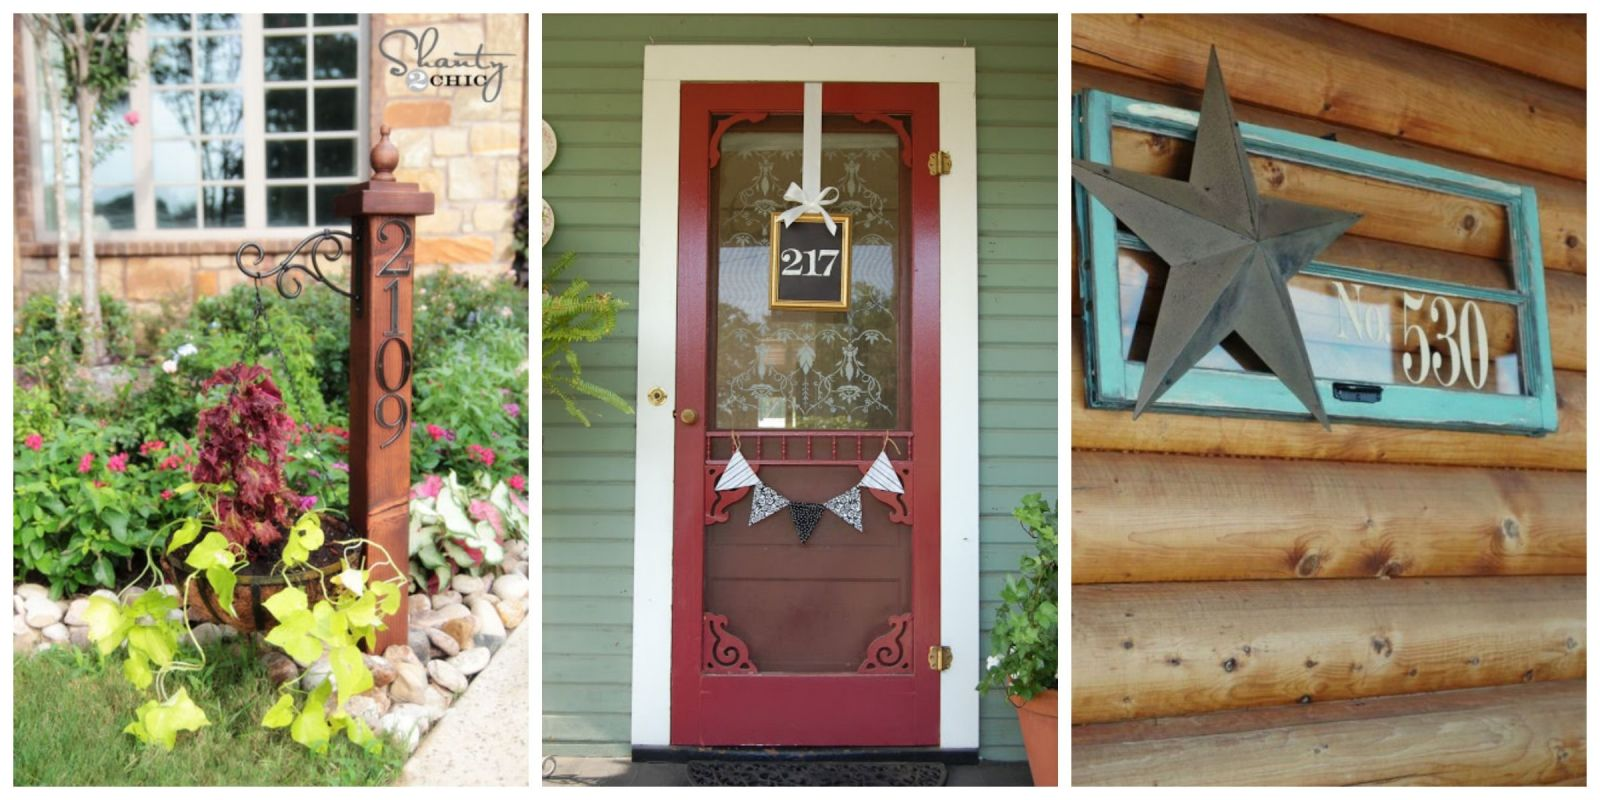 12 diy house number ideas cool house numbers you can make - House number plaque ideas ...